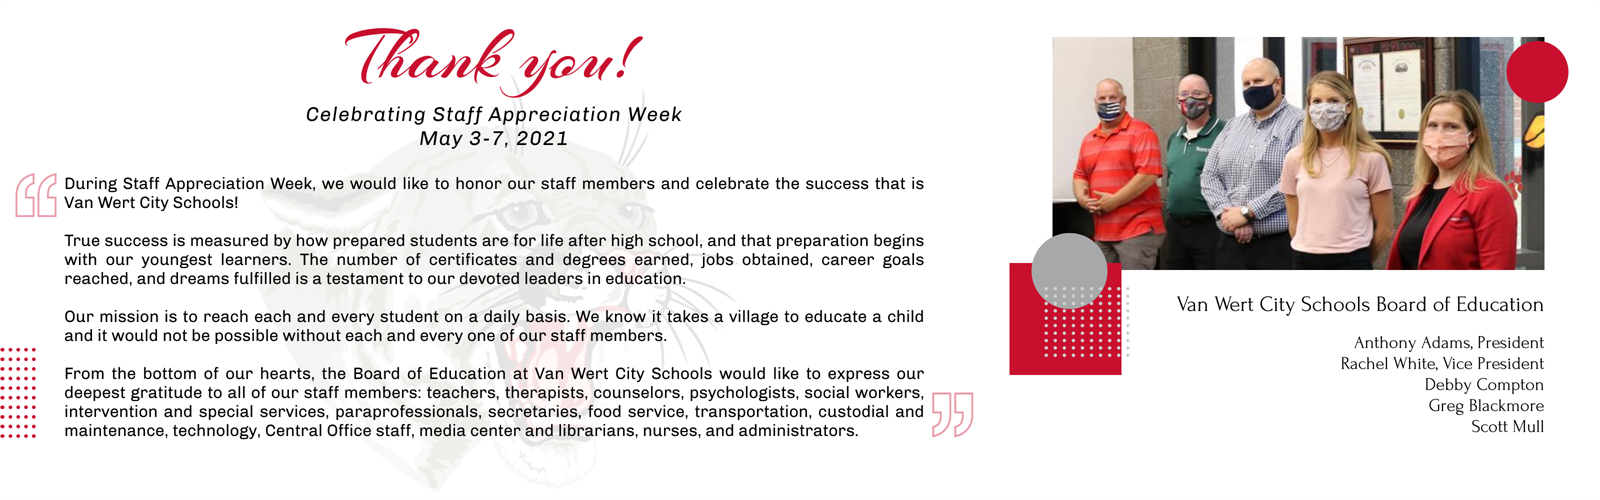 Staff appreciation week message from the Board of Education